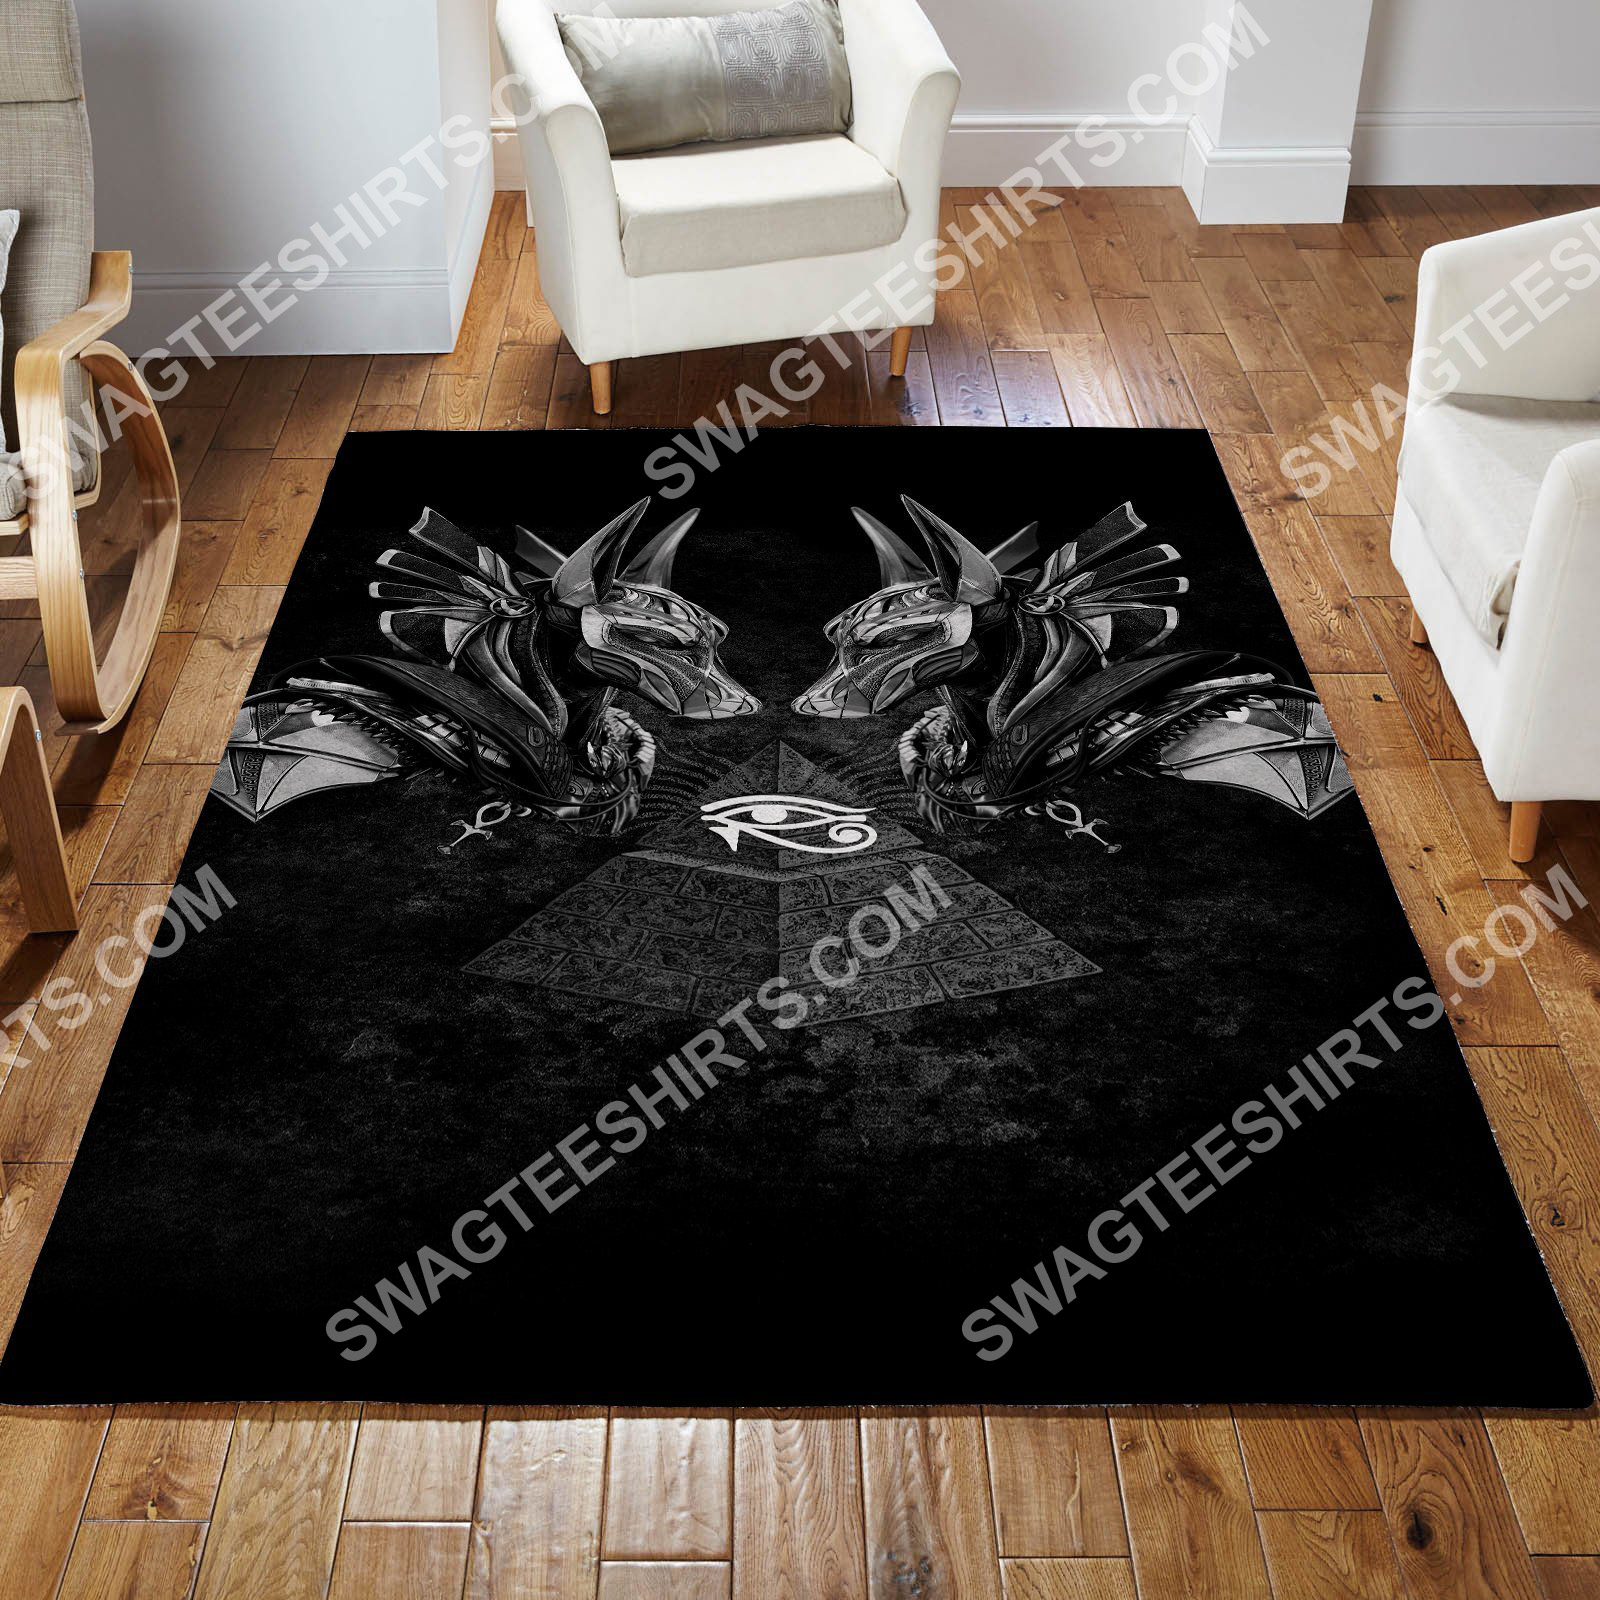 anubis god of the dead all over printed rug 2(1)